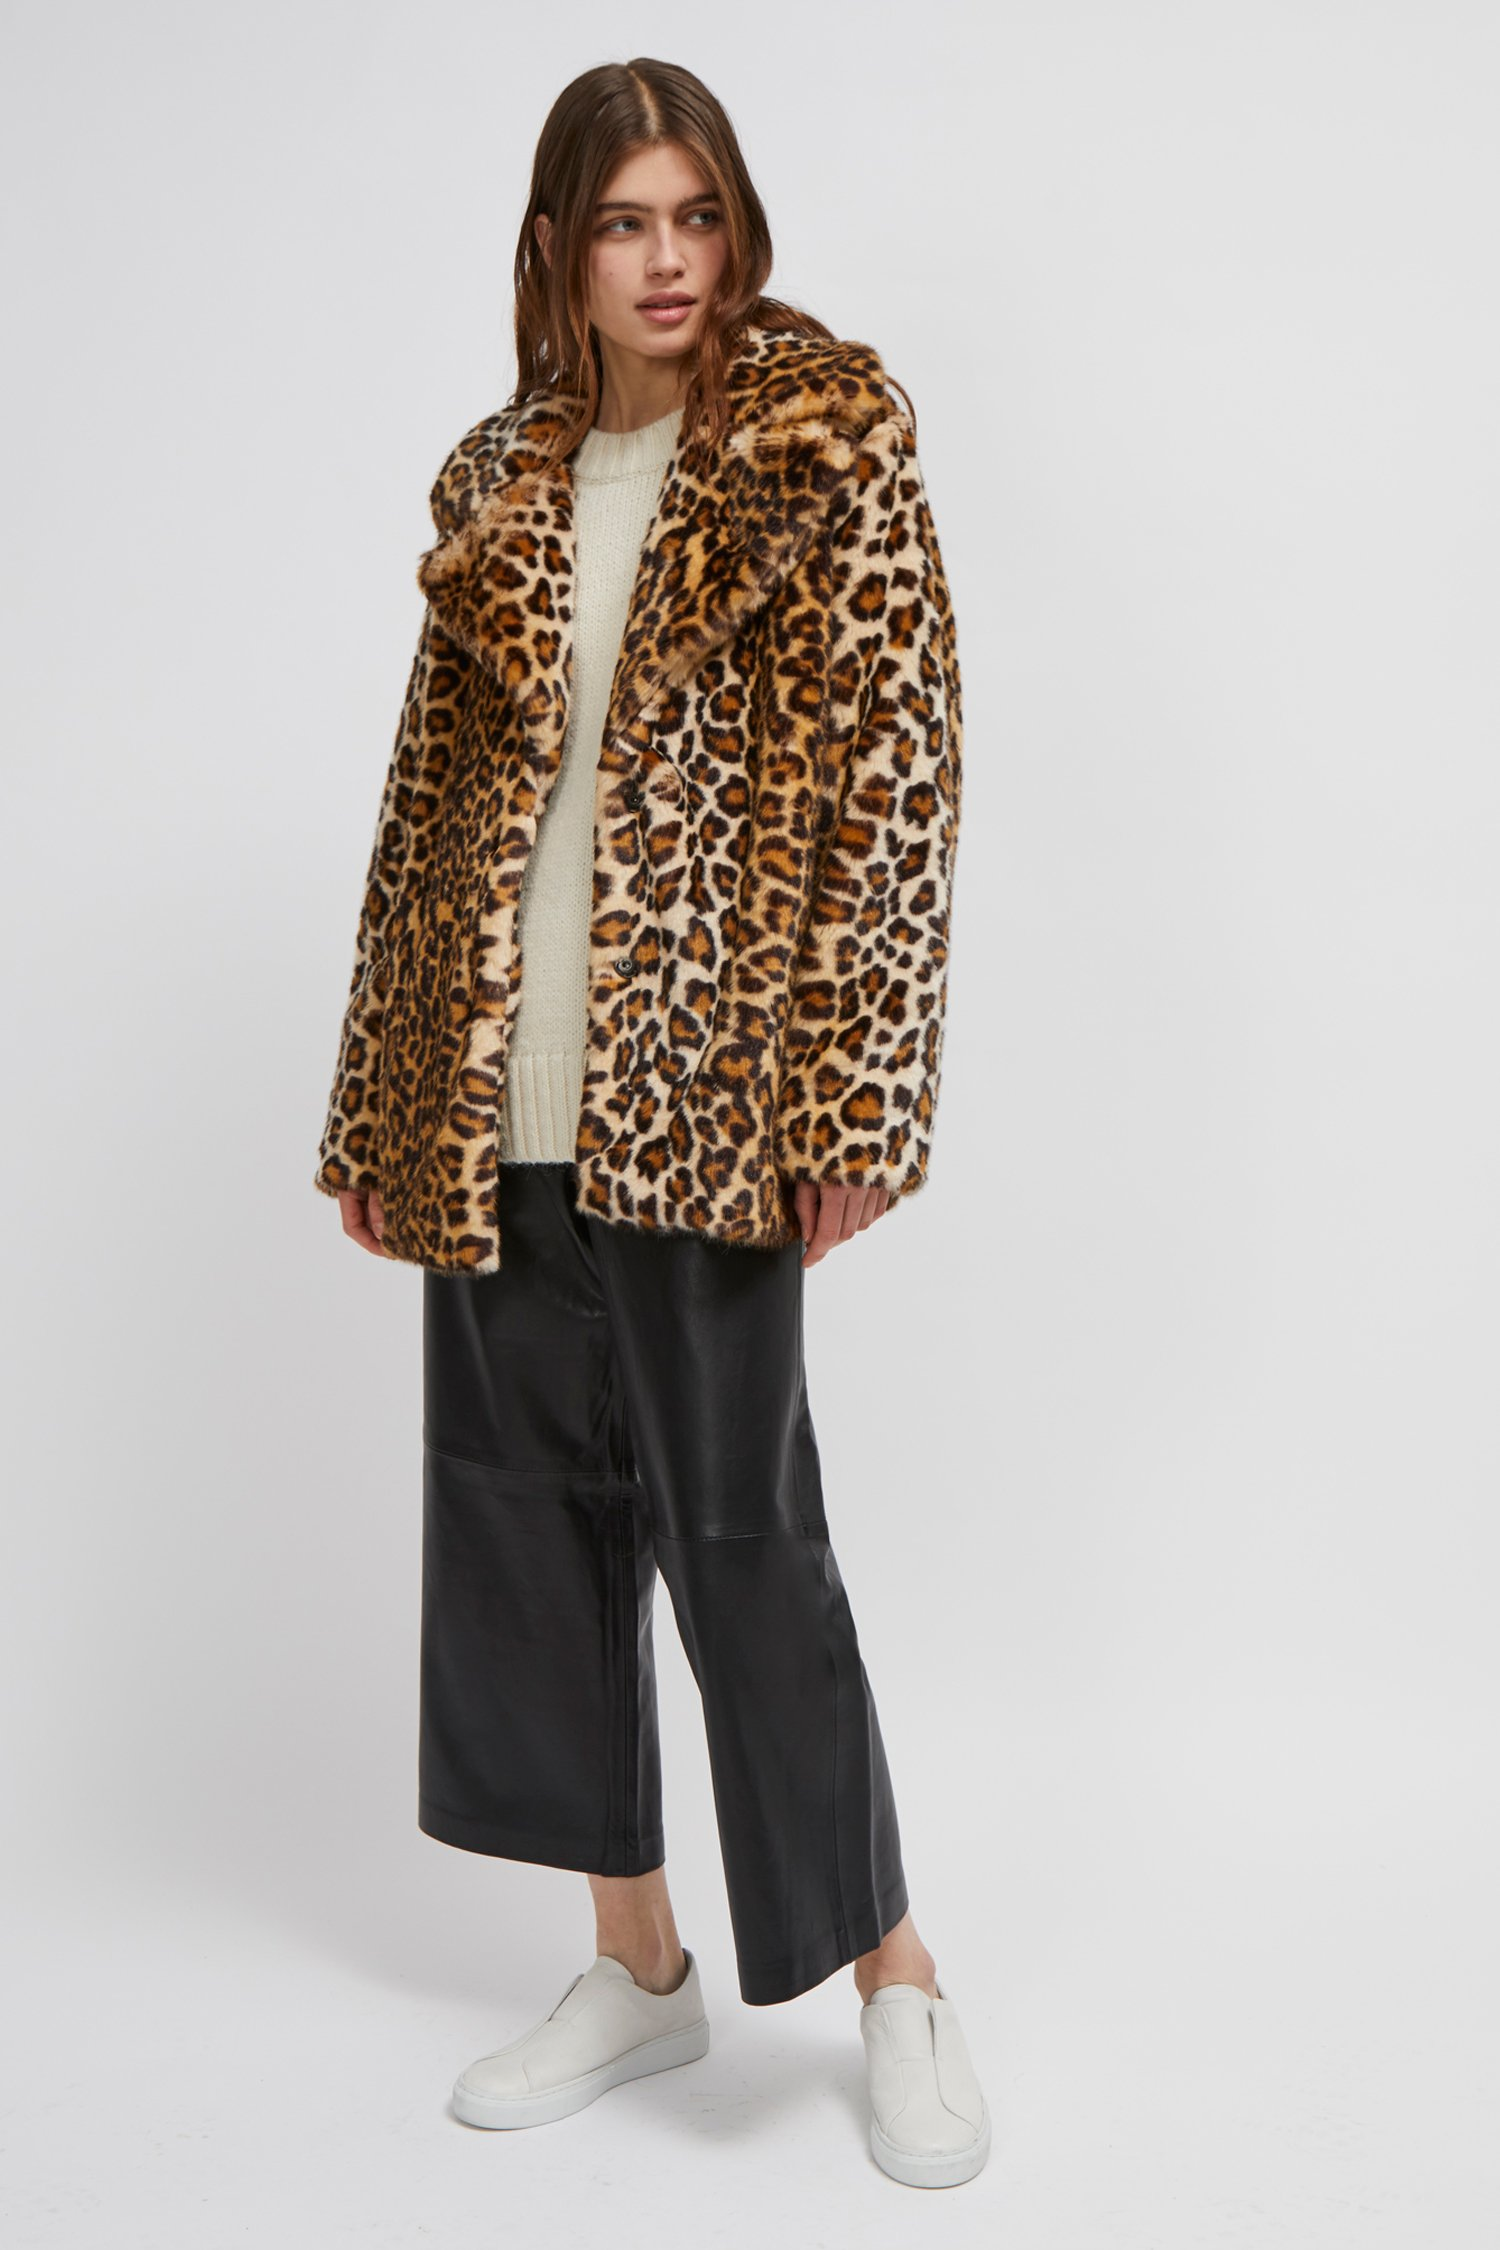 Leopard Print Faux Fur Coat Collections French Connection